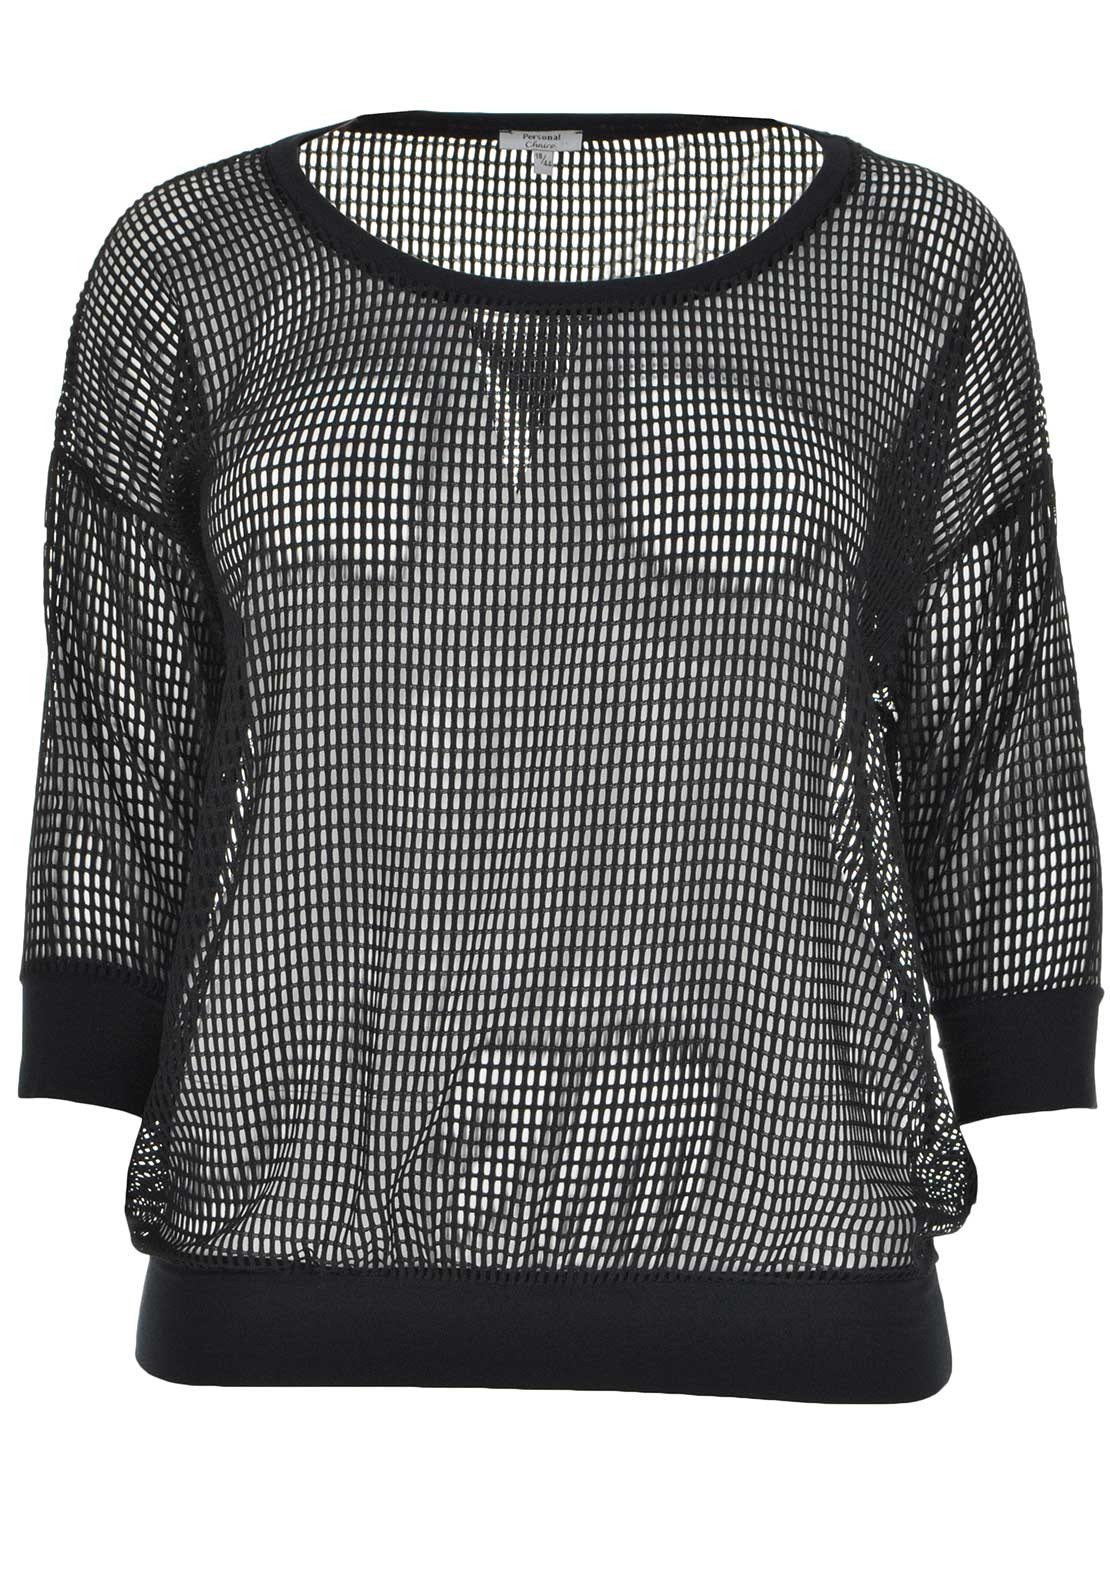 Personal Choice Sheer Cropped Sleeve Net Top, Black